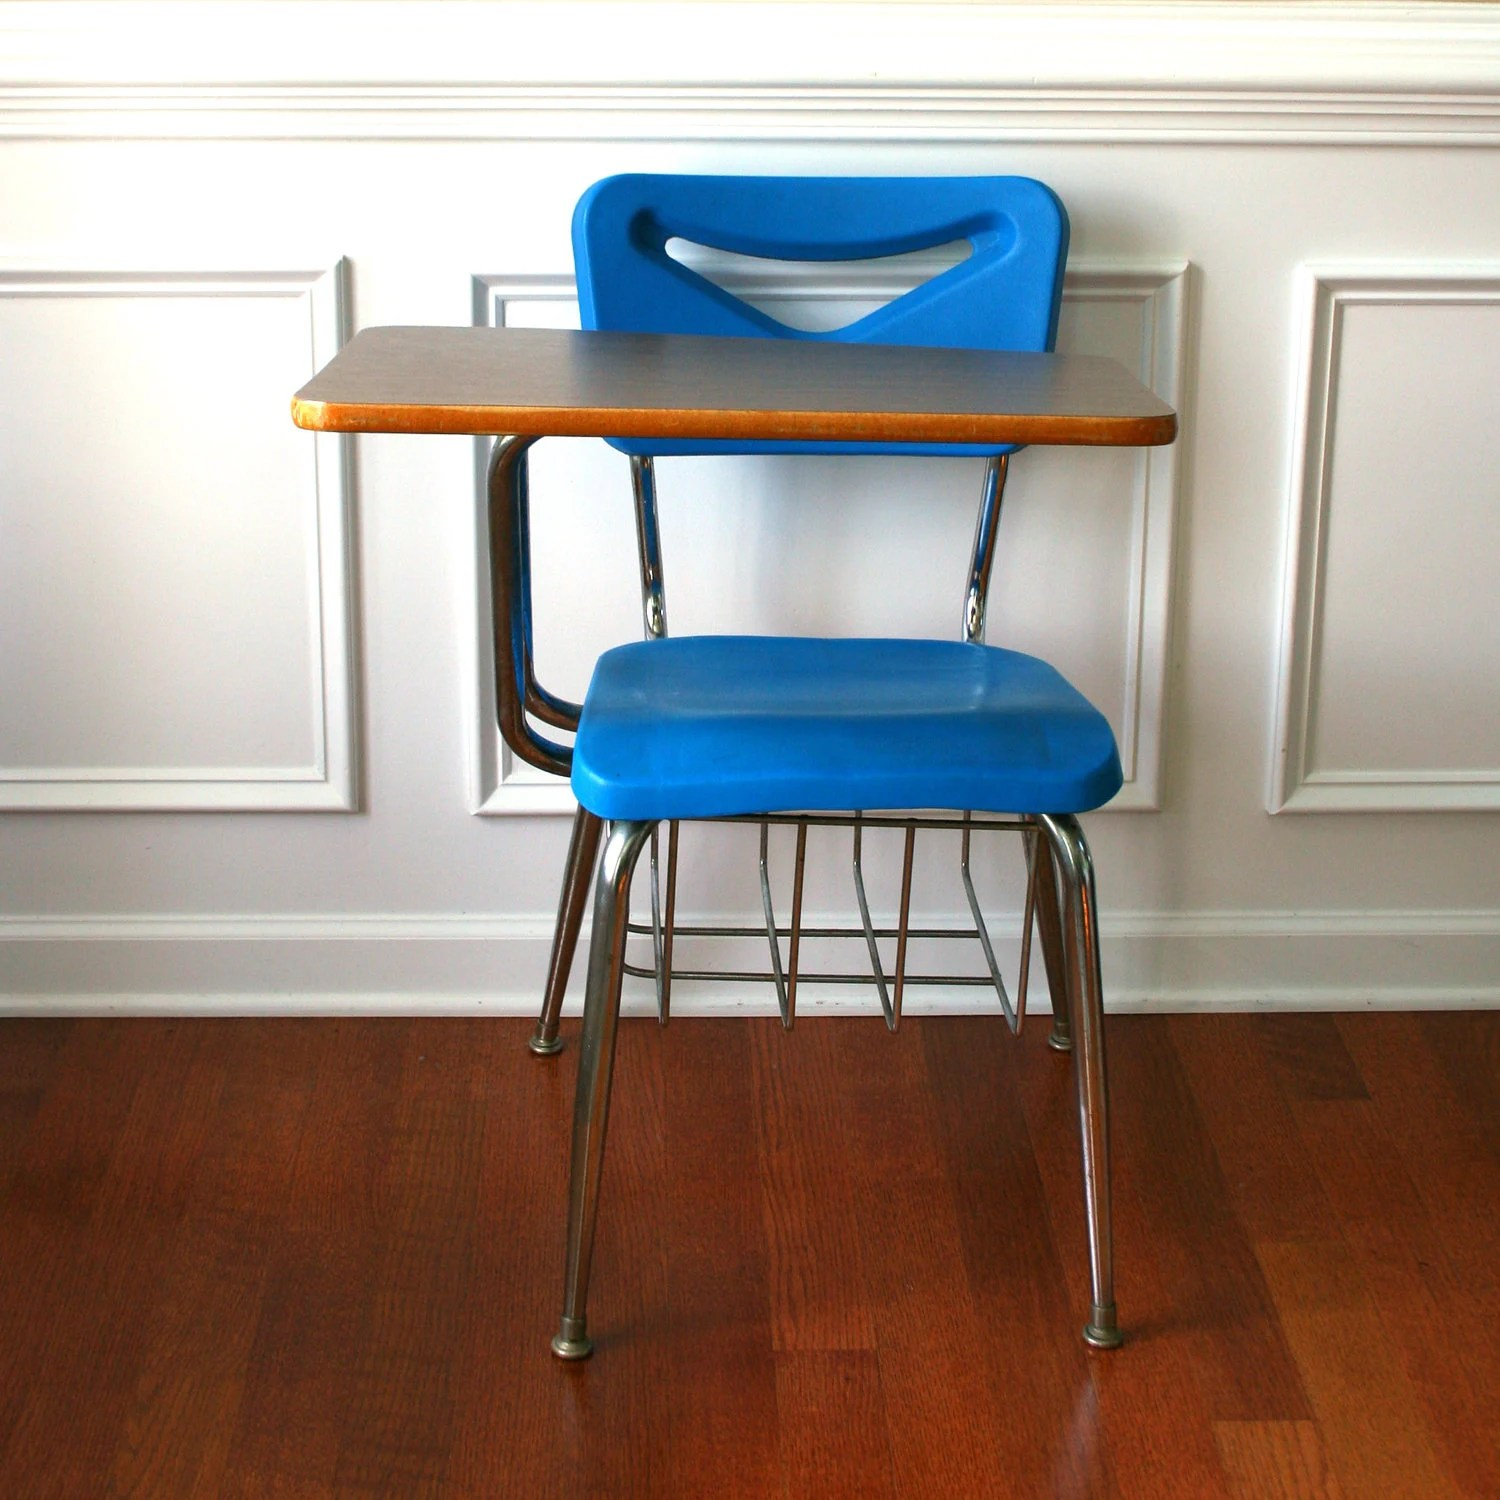 School Desk And Chair Vintage Modern School Desk Storage Chair Metal Plastic Blue